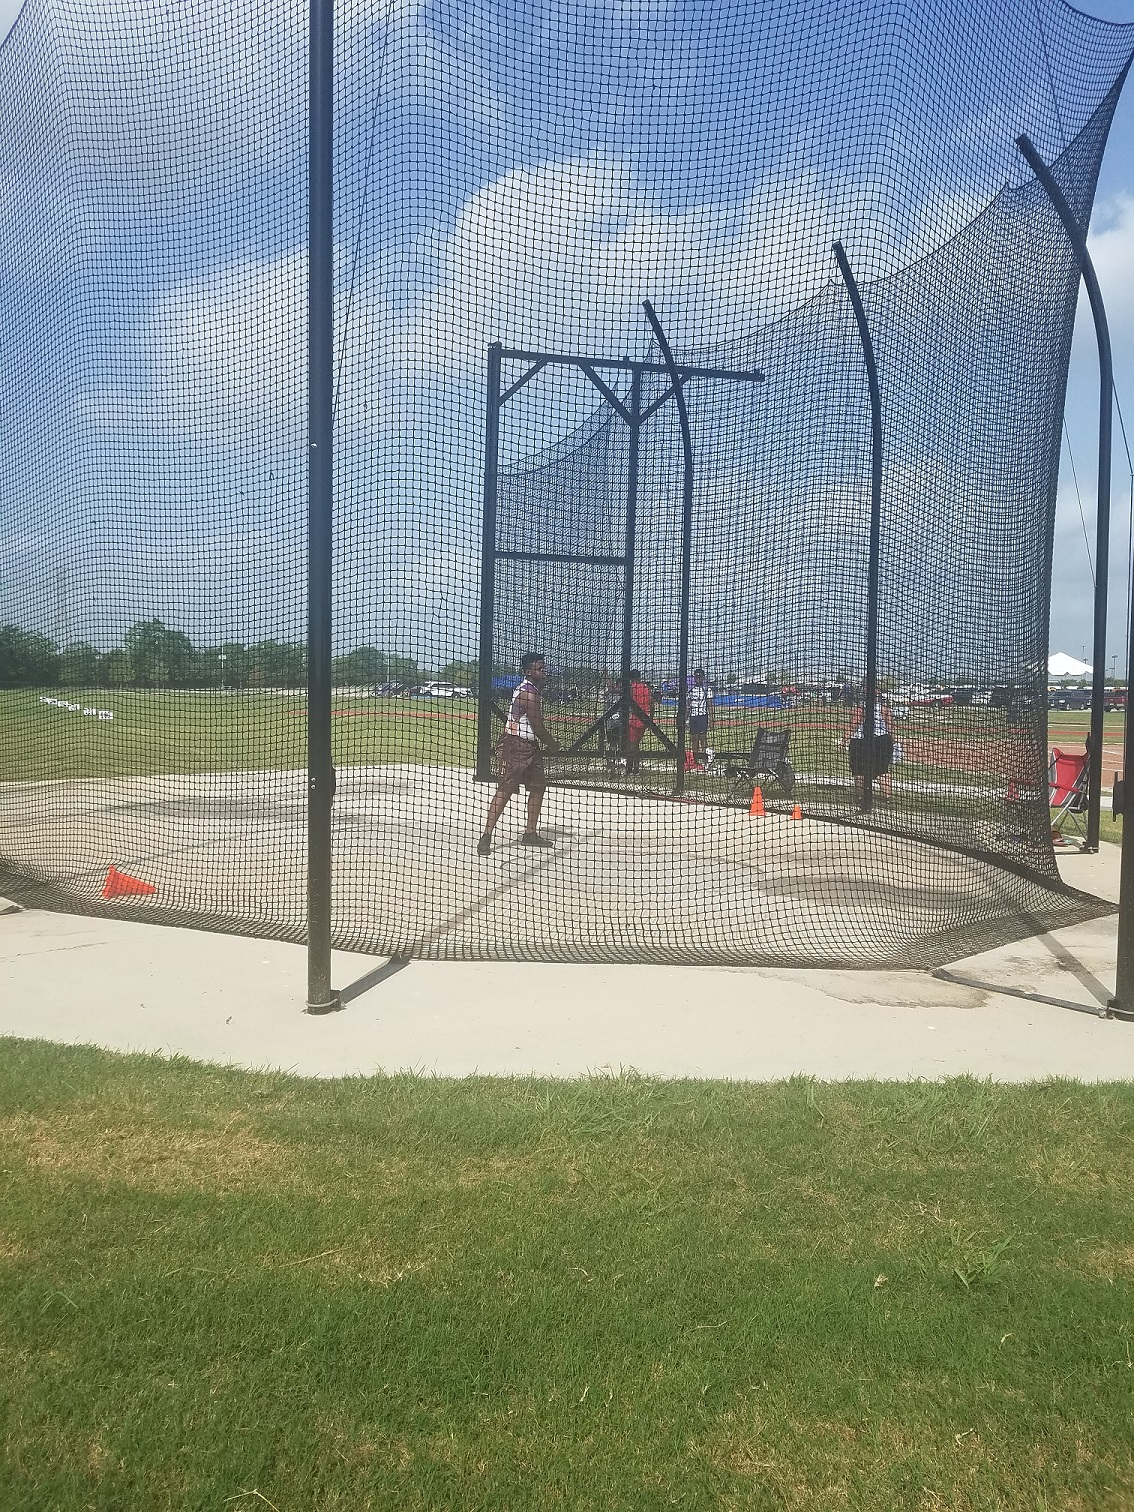 Anthony throwing the discus